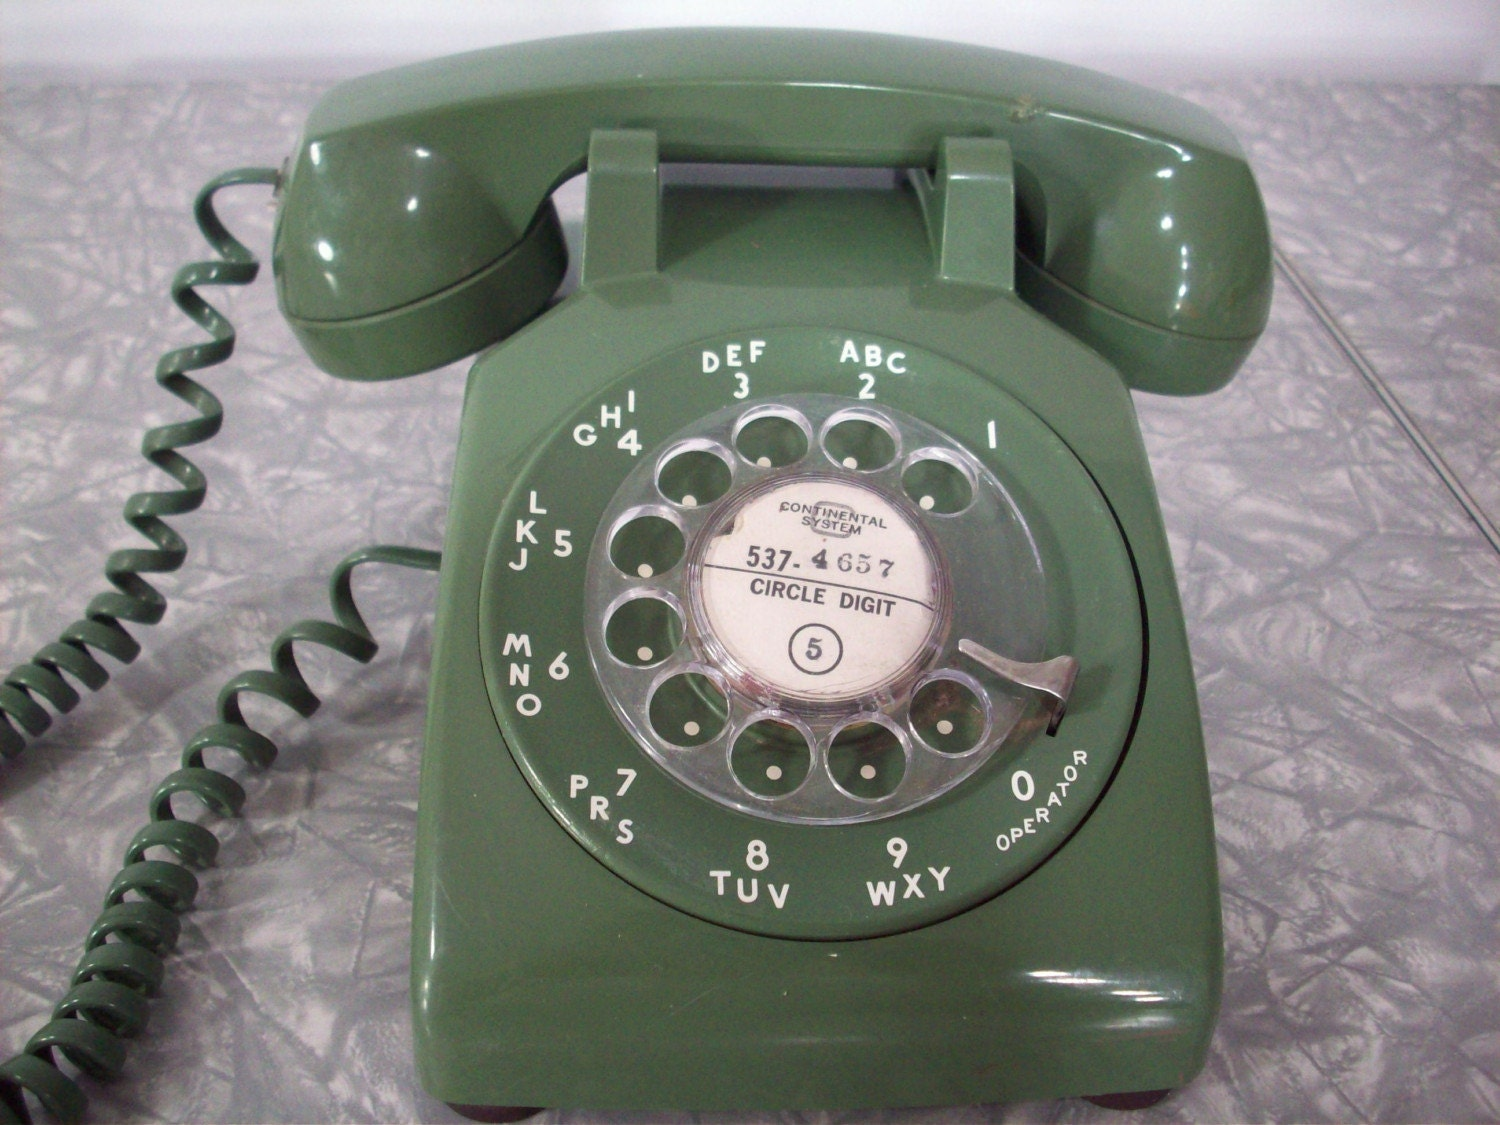 The Most Awesome Avocado Green WORKING Rotary Desk Phone